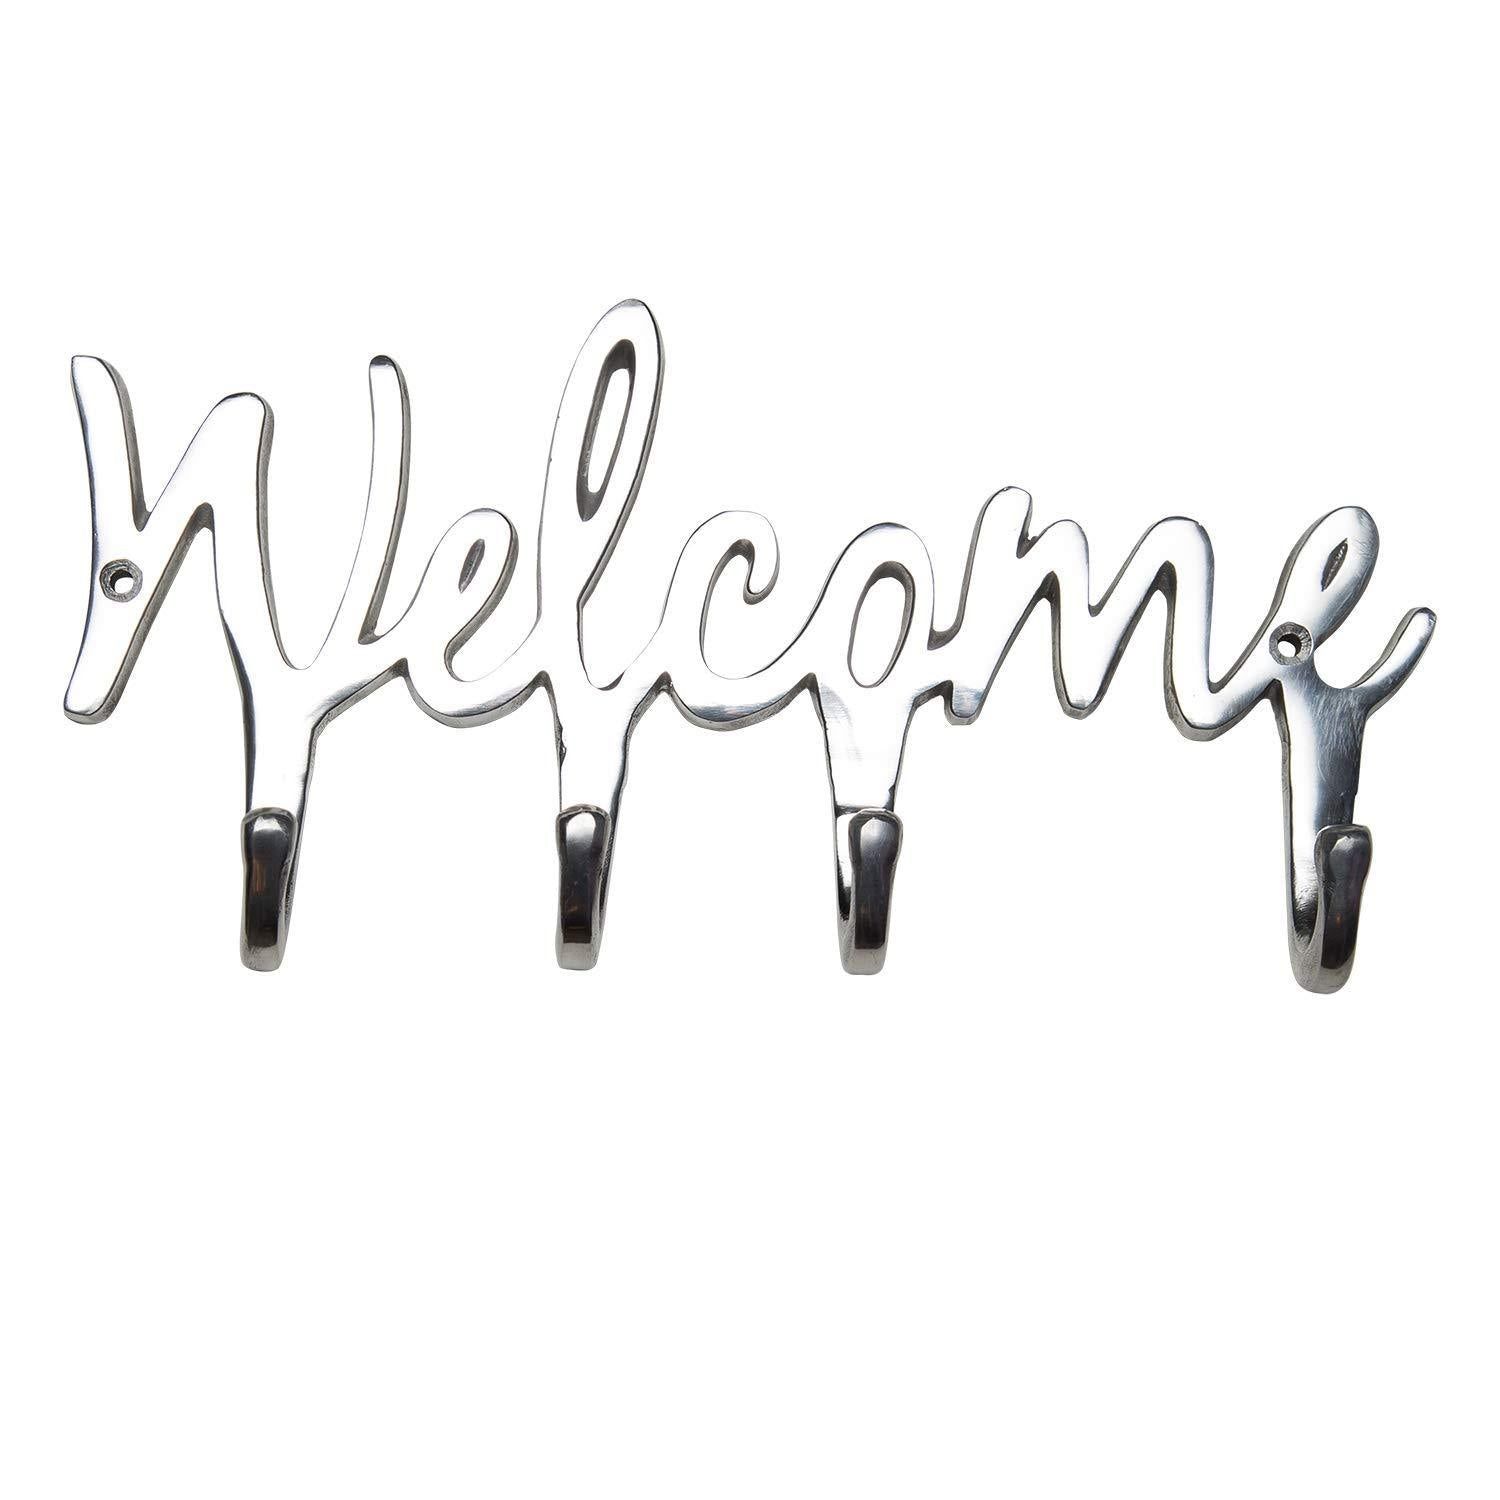 Comfify Welcome Aluminium Key Holder for Wall